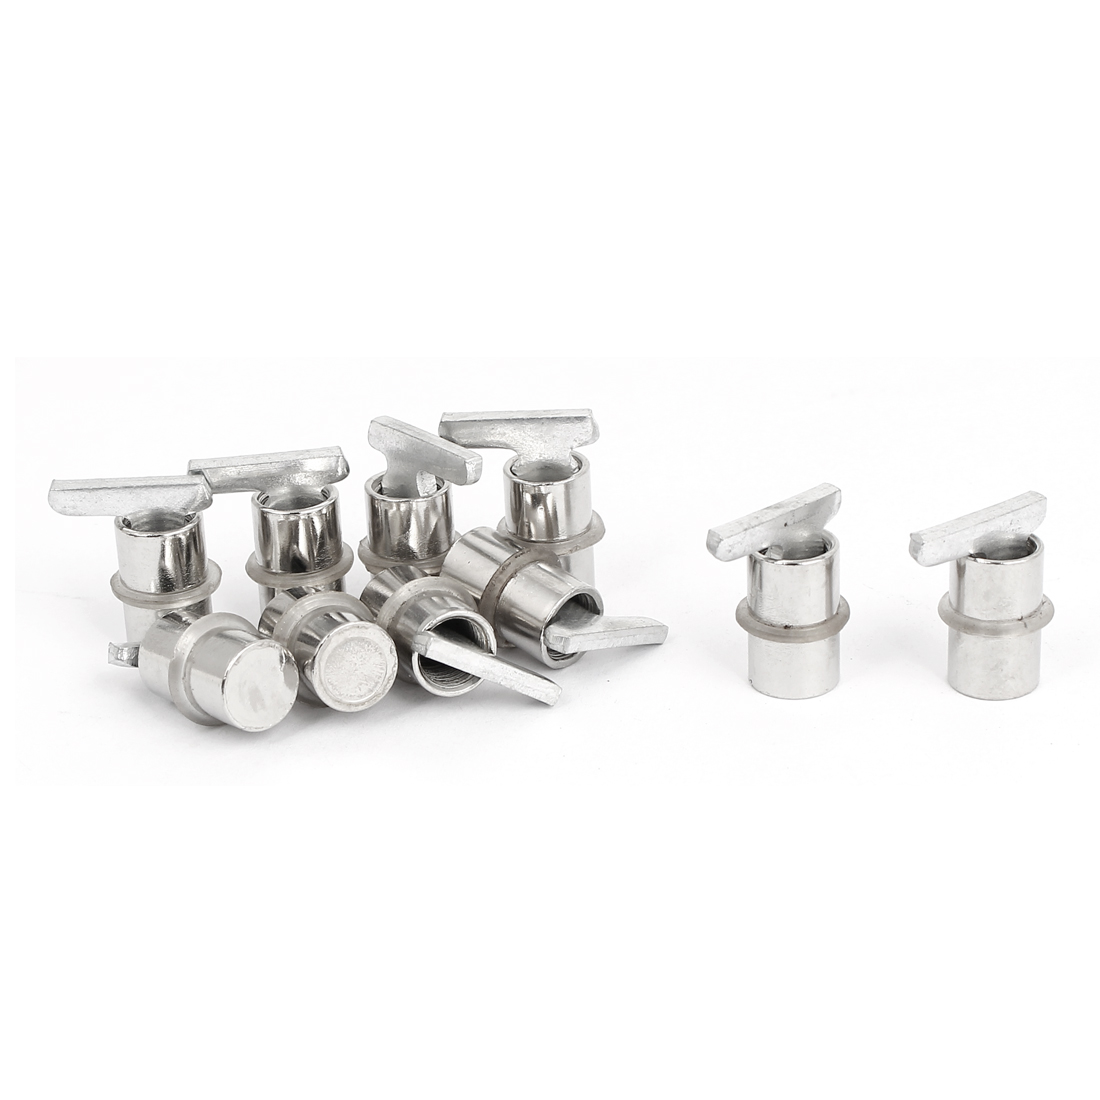 10pcs Furniture Fitting Cabinet Glass Shelf Holder Support Metal Pins Studs Pegs